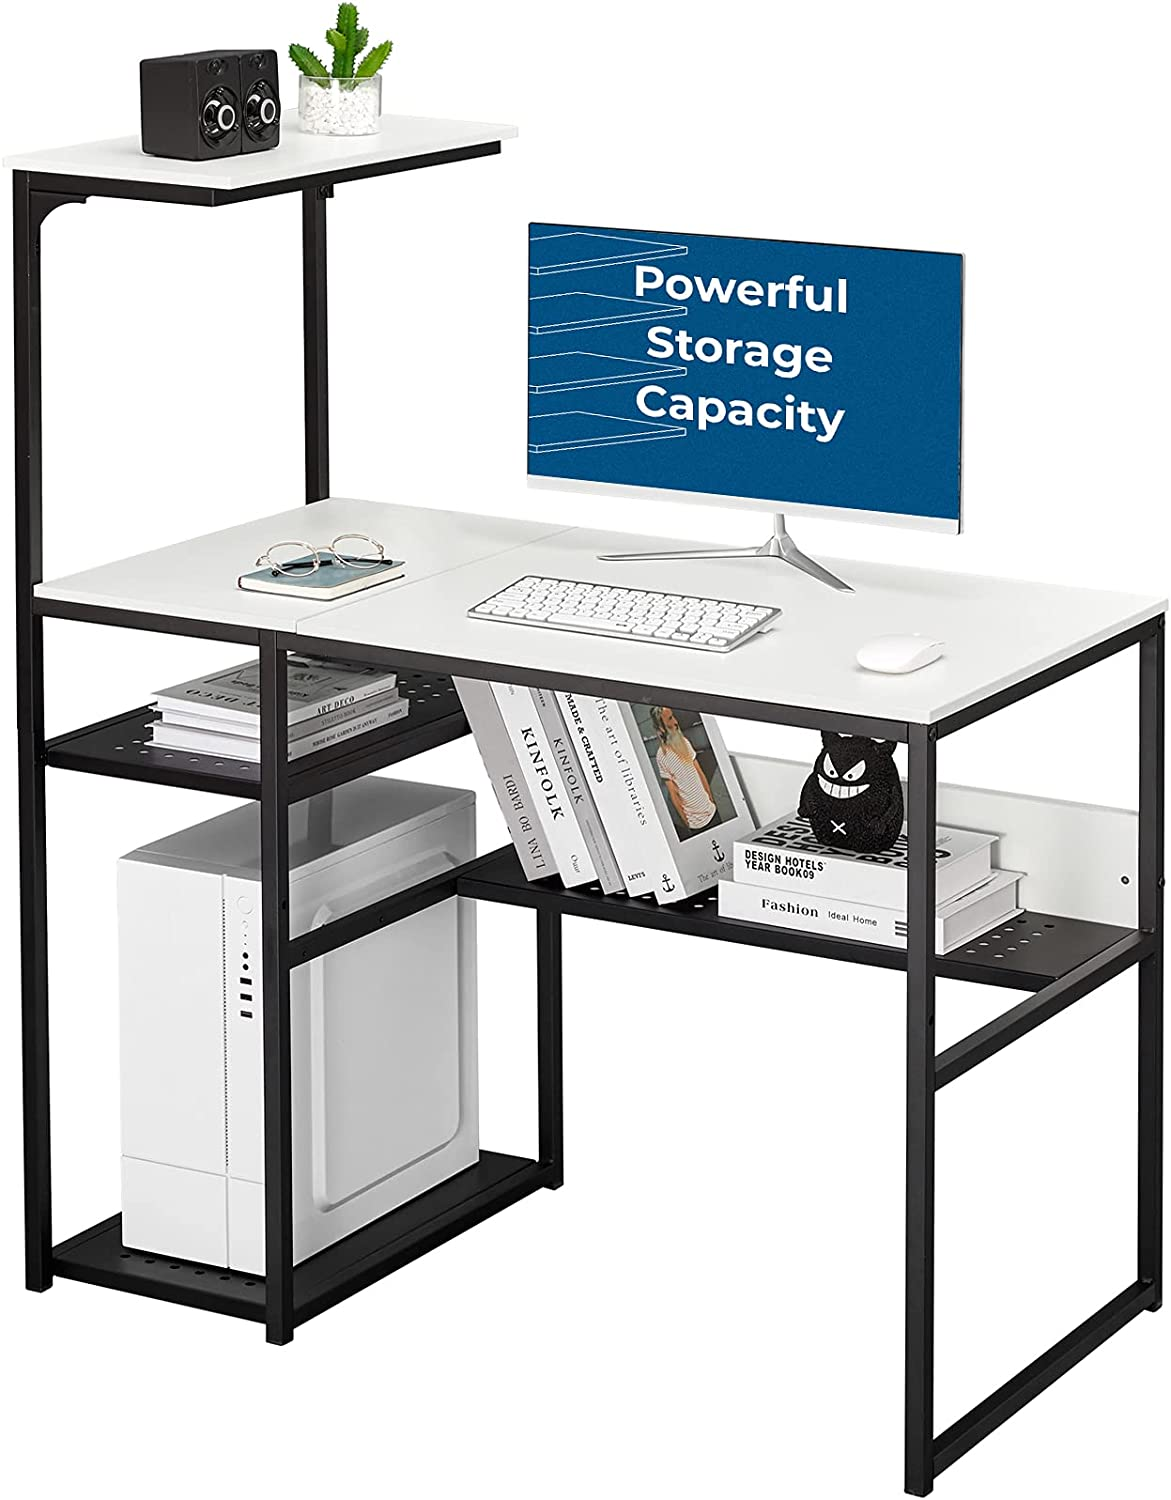 MASACORO Computer Student School Writing Max 49% OFF inch Desk 40 Home Discount mail order Work